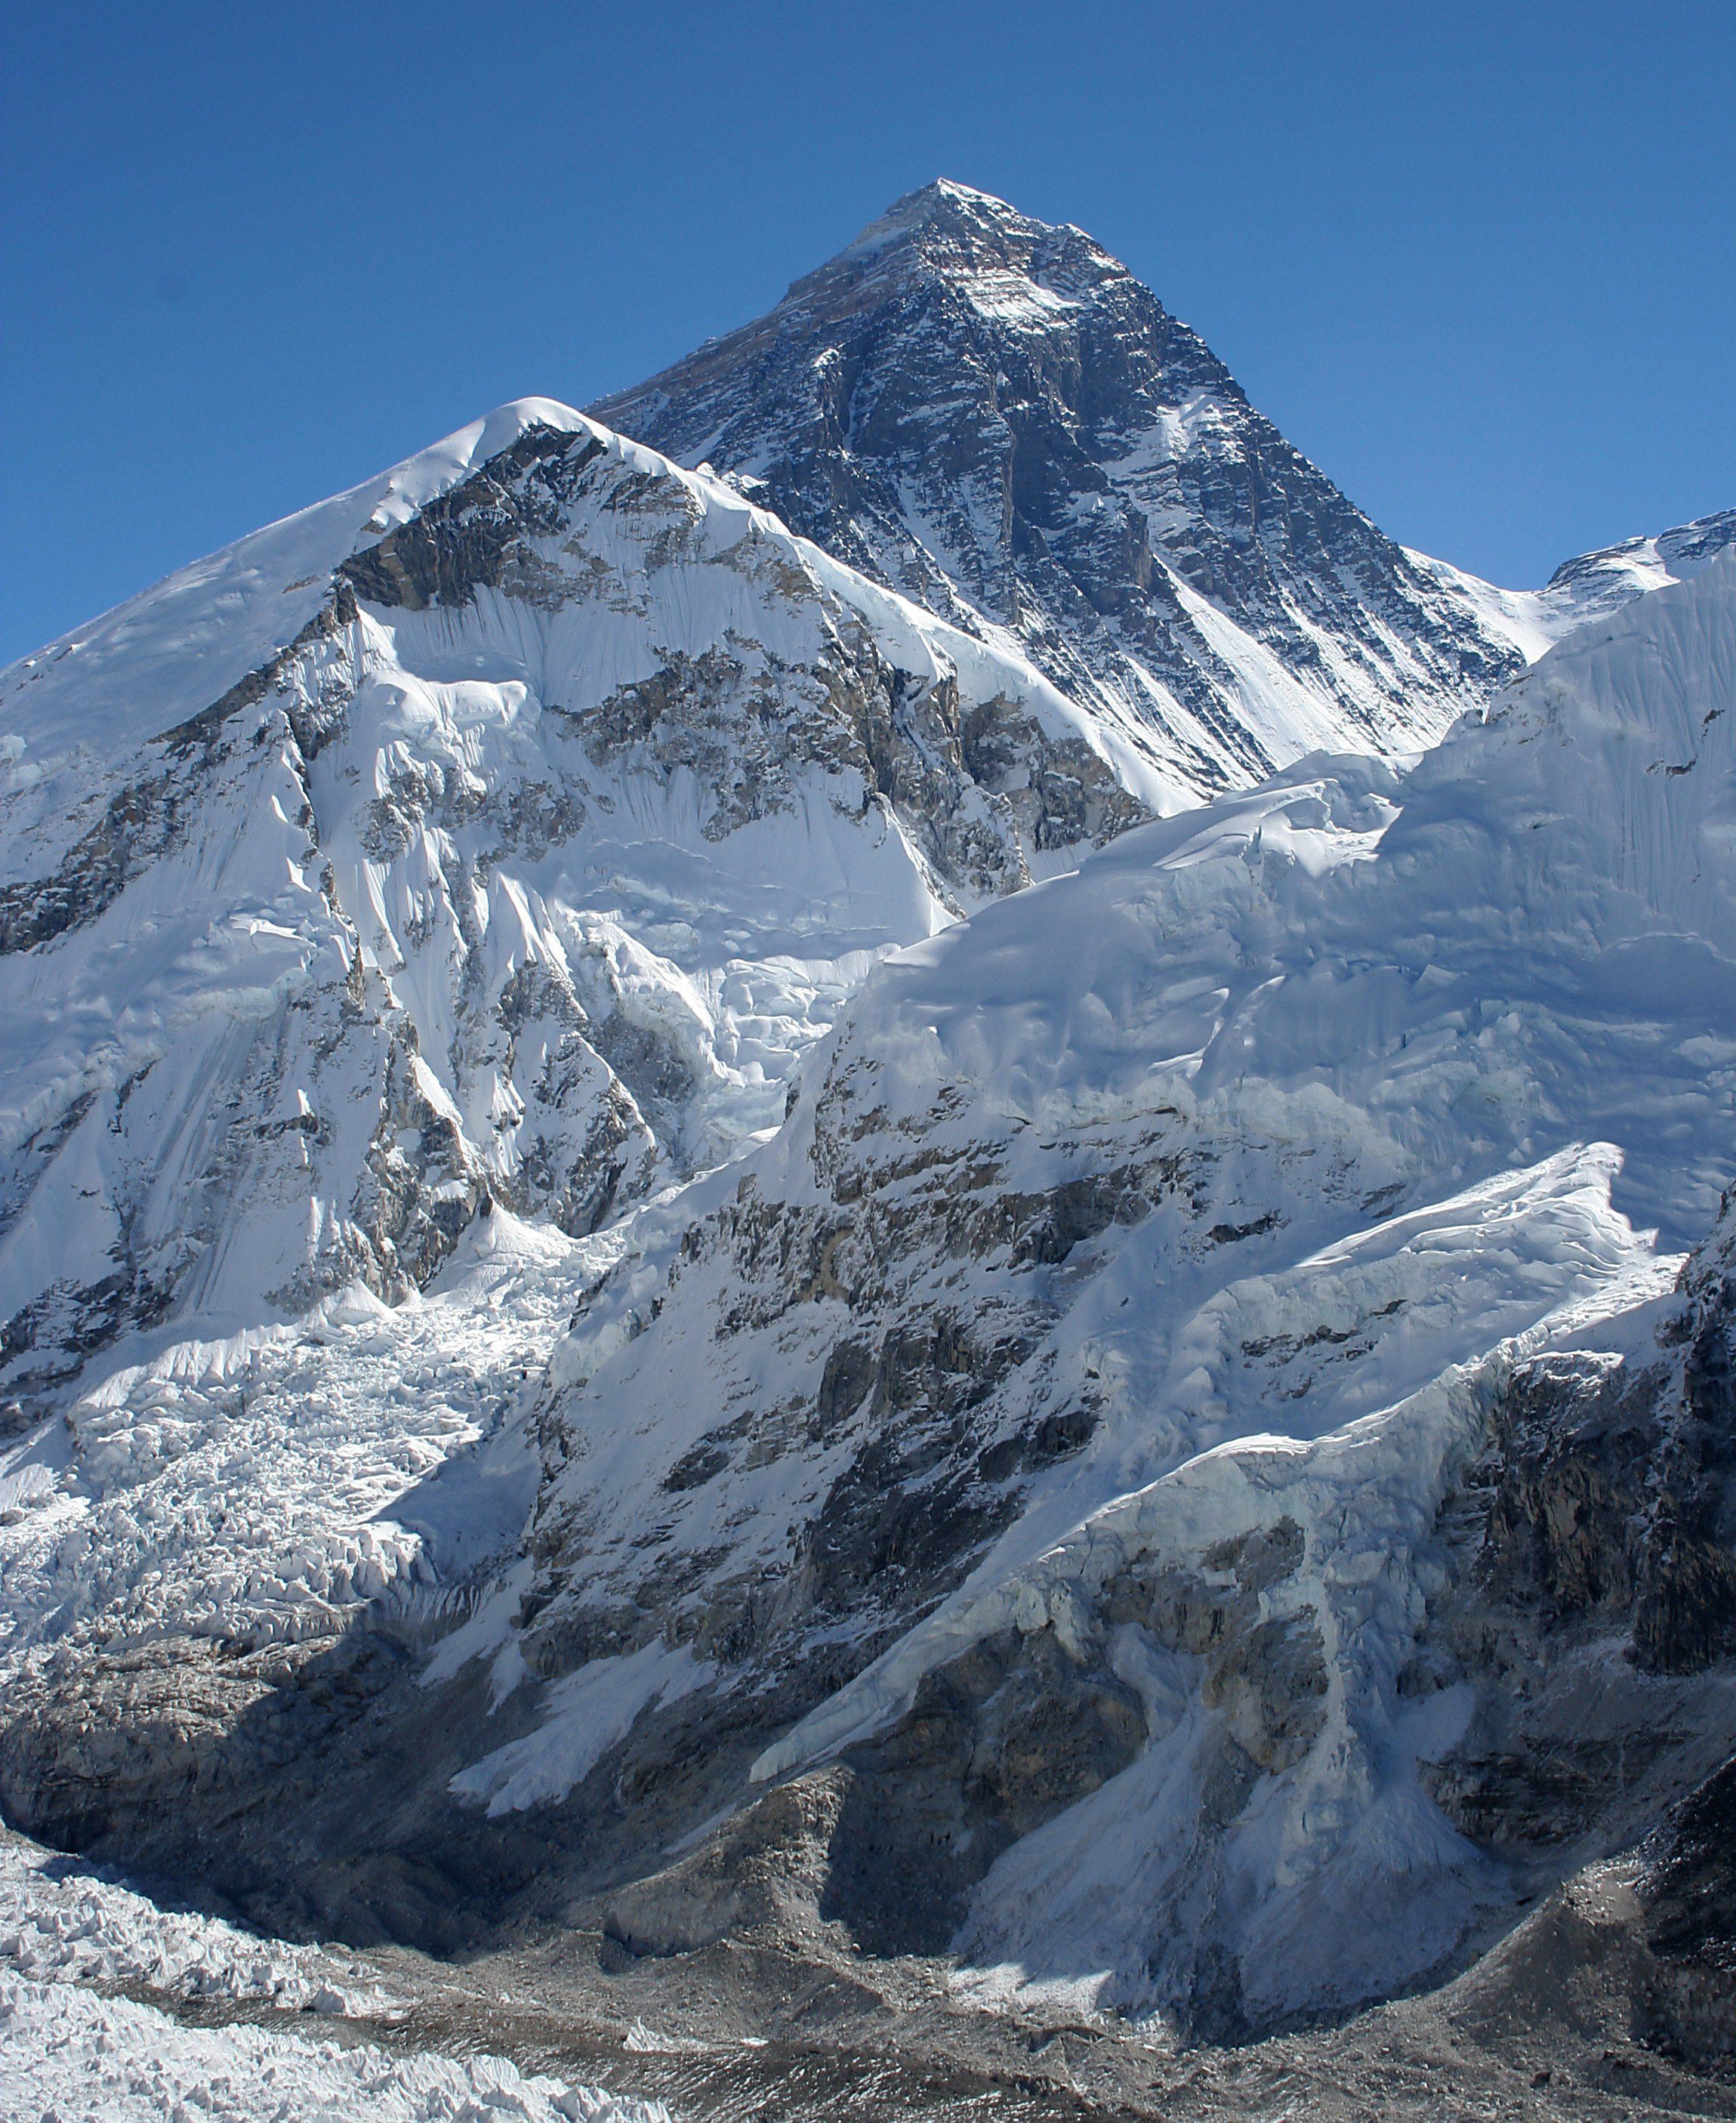 File:Everest kalapatthar crop.jpg